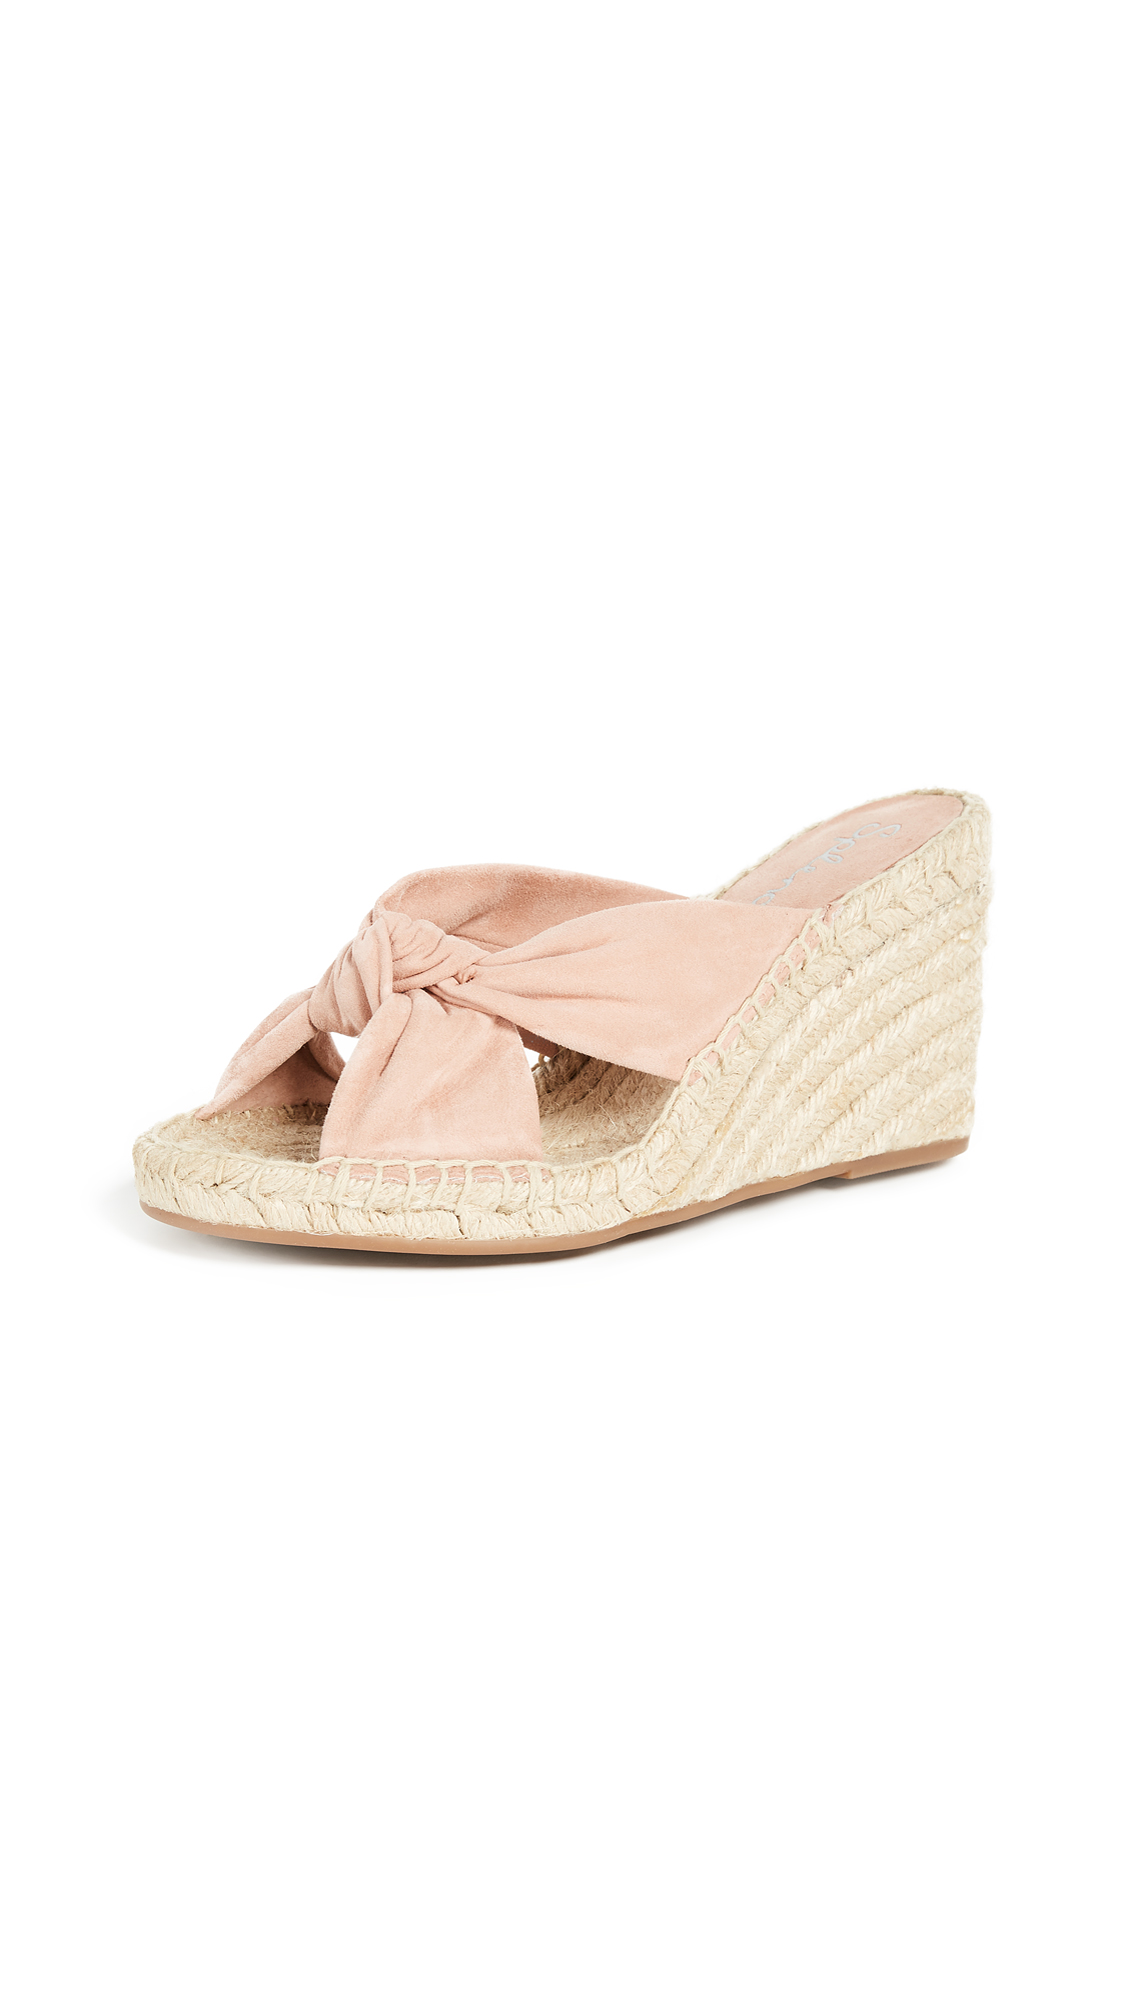 Splendid Bautista Wedges In Dark Blush